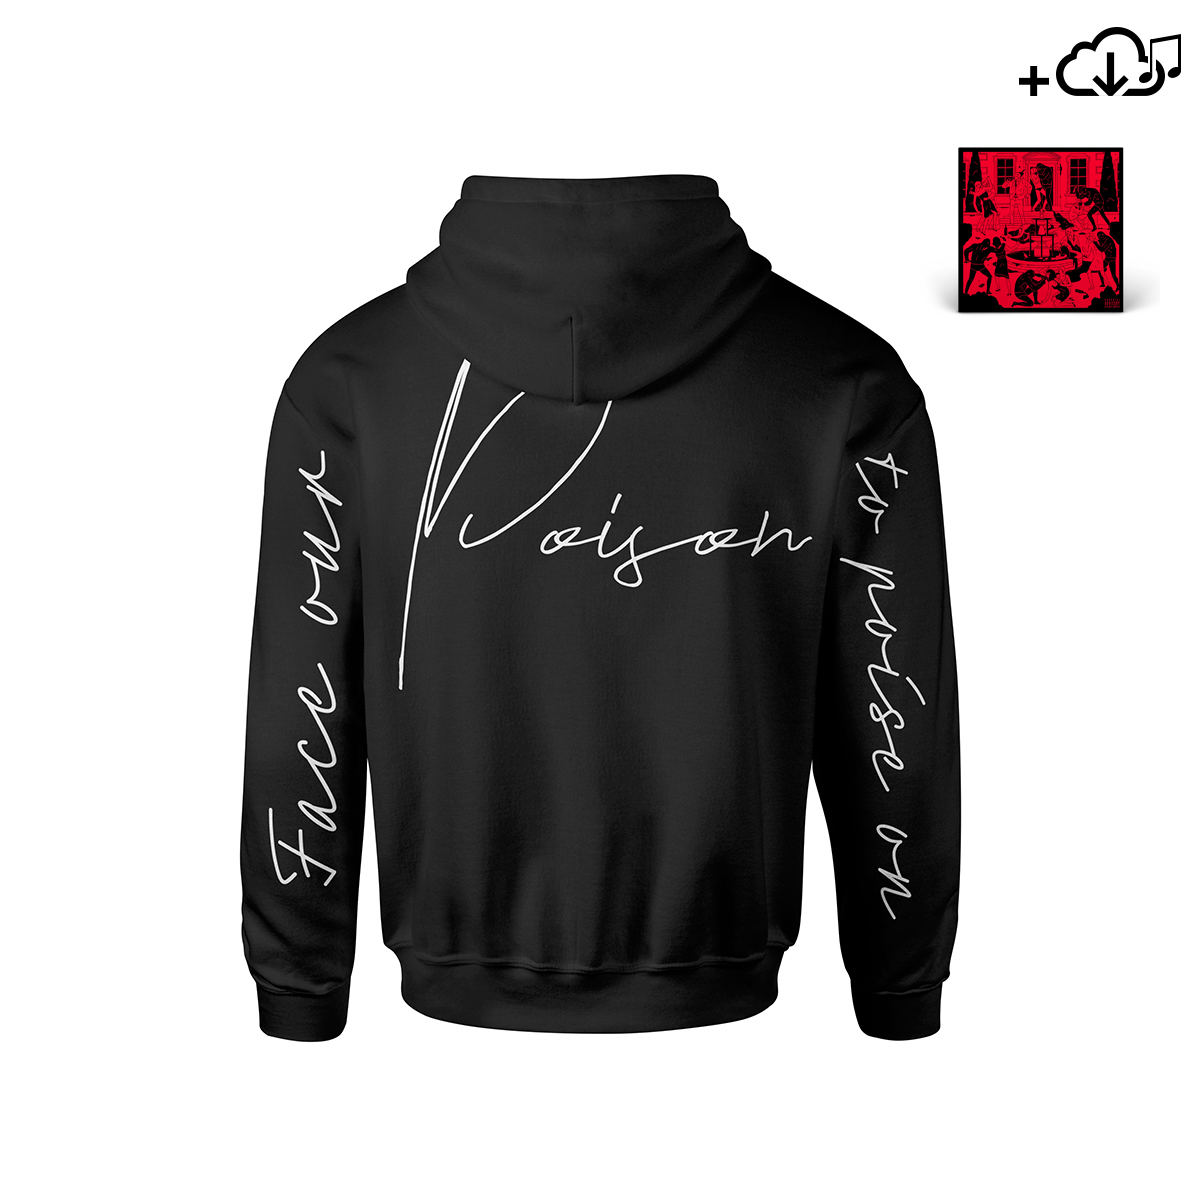 Poison Cover Pullover Hoodie + Poison Digital Download